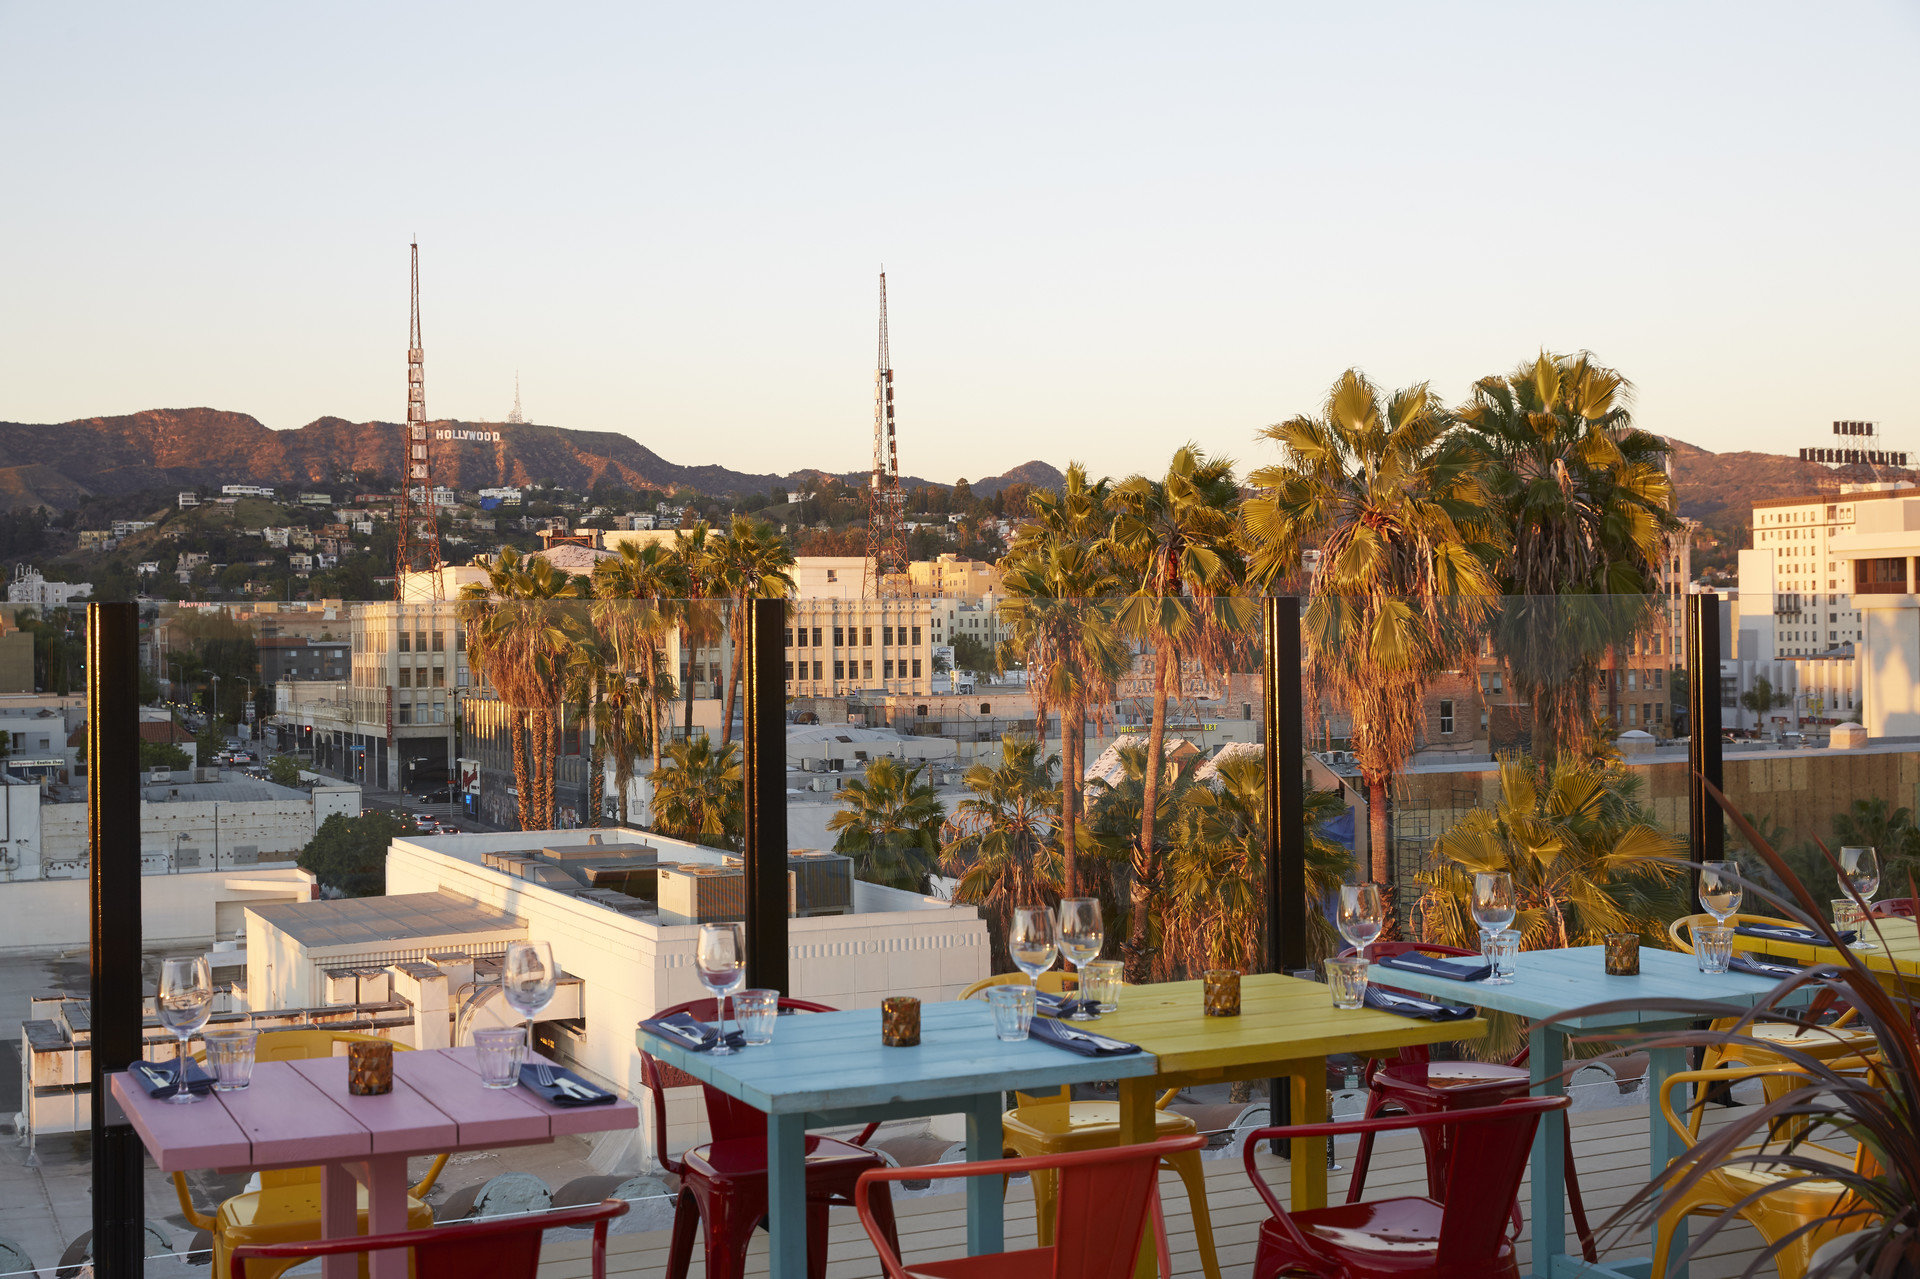 Boutique city views Dining glow golden hour Hip outdoor dining palm trees Rooftop Sunset tables Travel Tips trendy Tropical view outdoor sky Town plaza City neighbourhood urban area human settlement cityscape Harbor Downtown town square skyline several day